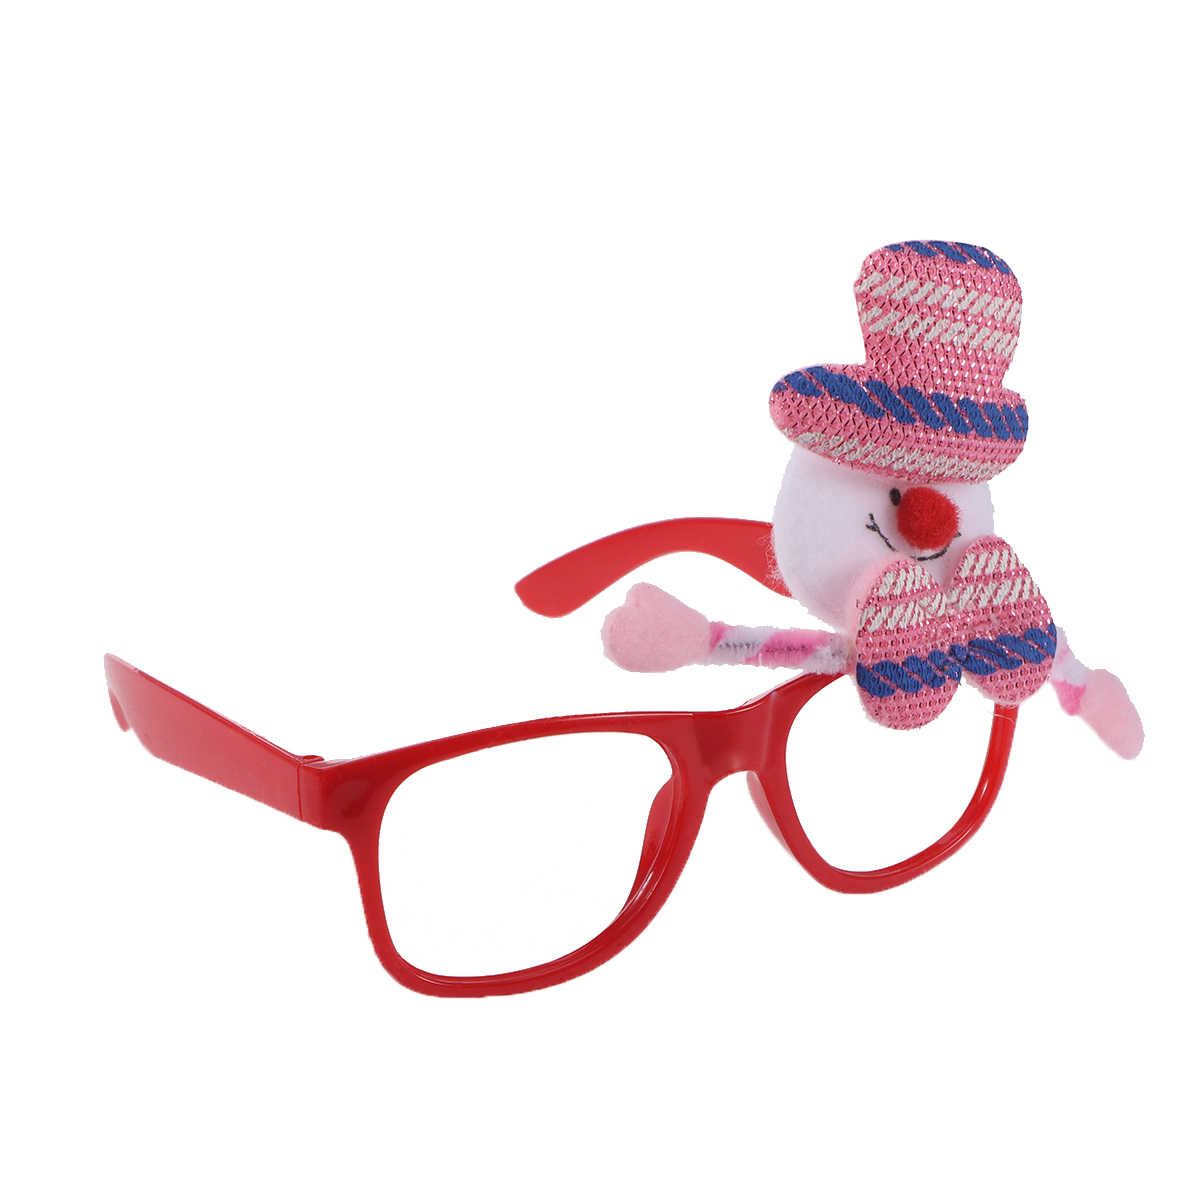 Christmas Fancy Dress Funny.Christmas Fancy Dress Funny Glasses Frame Snowman With Small Hands Costume Ornaments Party Decoration Gifts Glasses